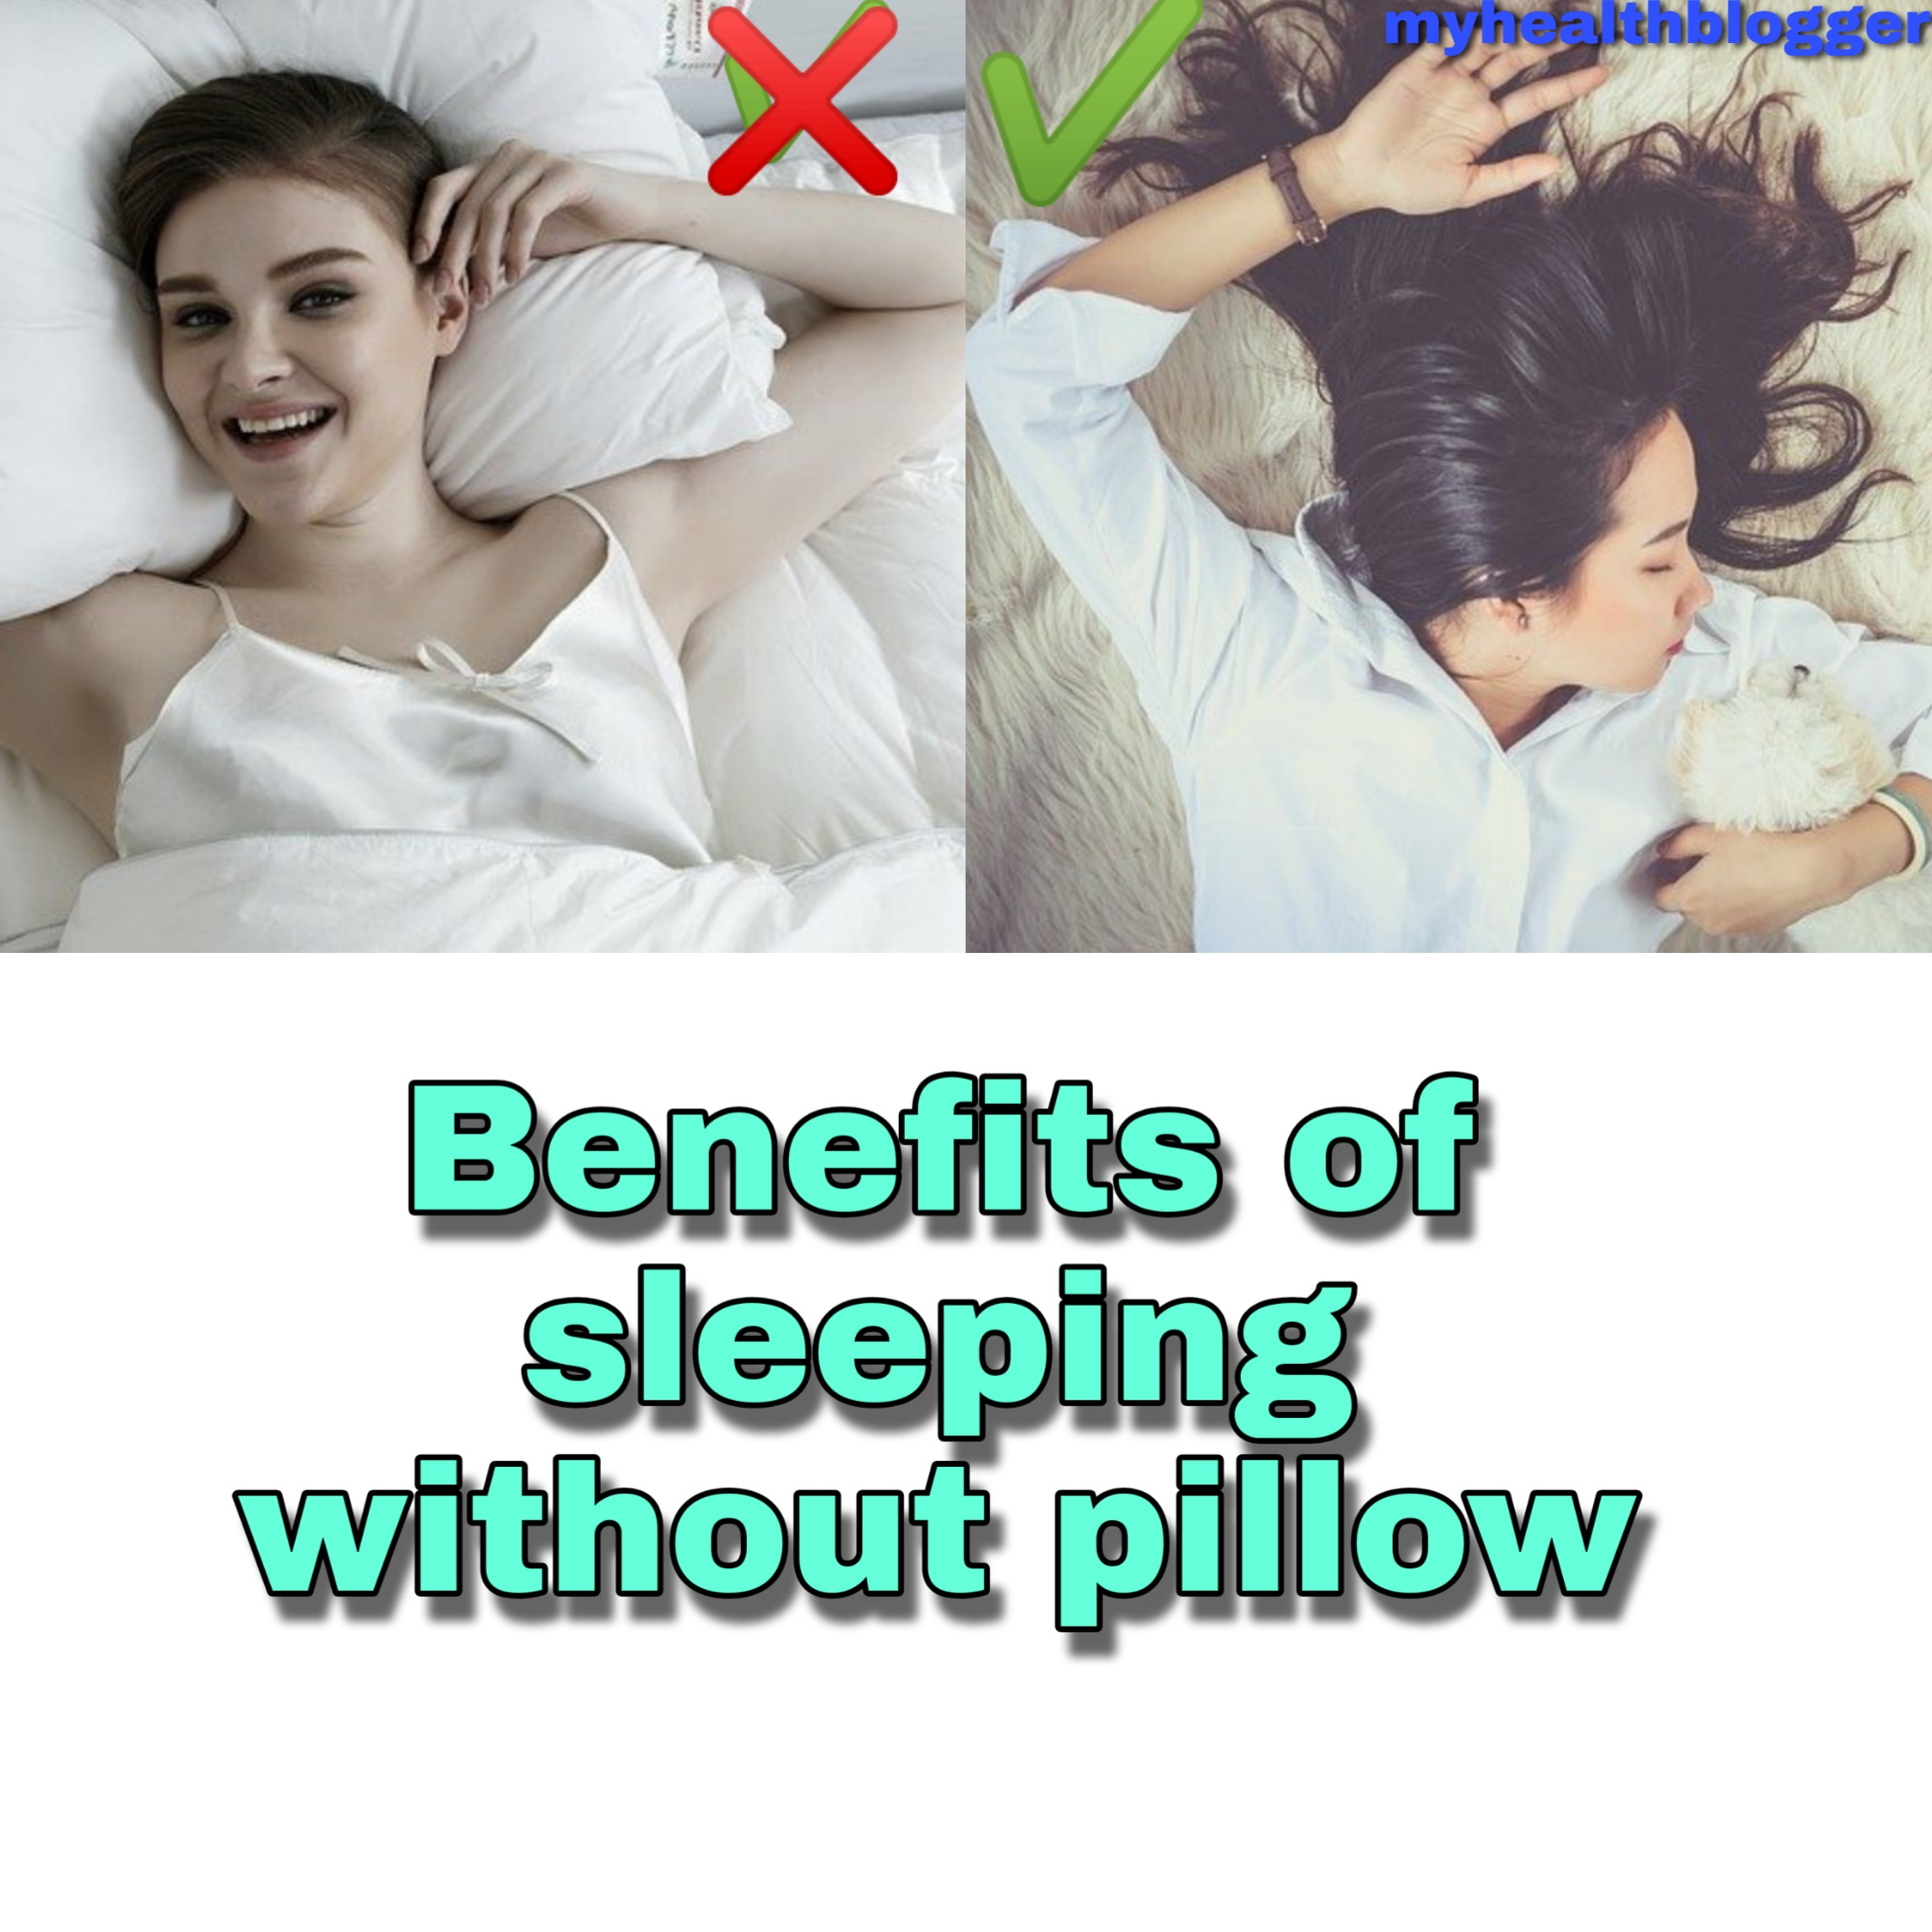 Benefits of sleeping without pillow